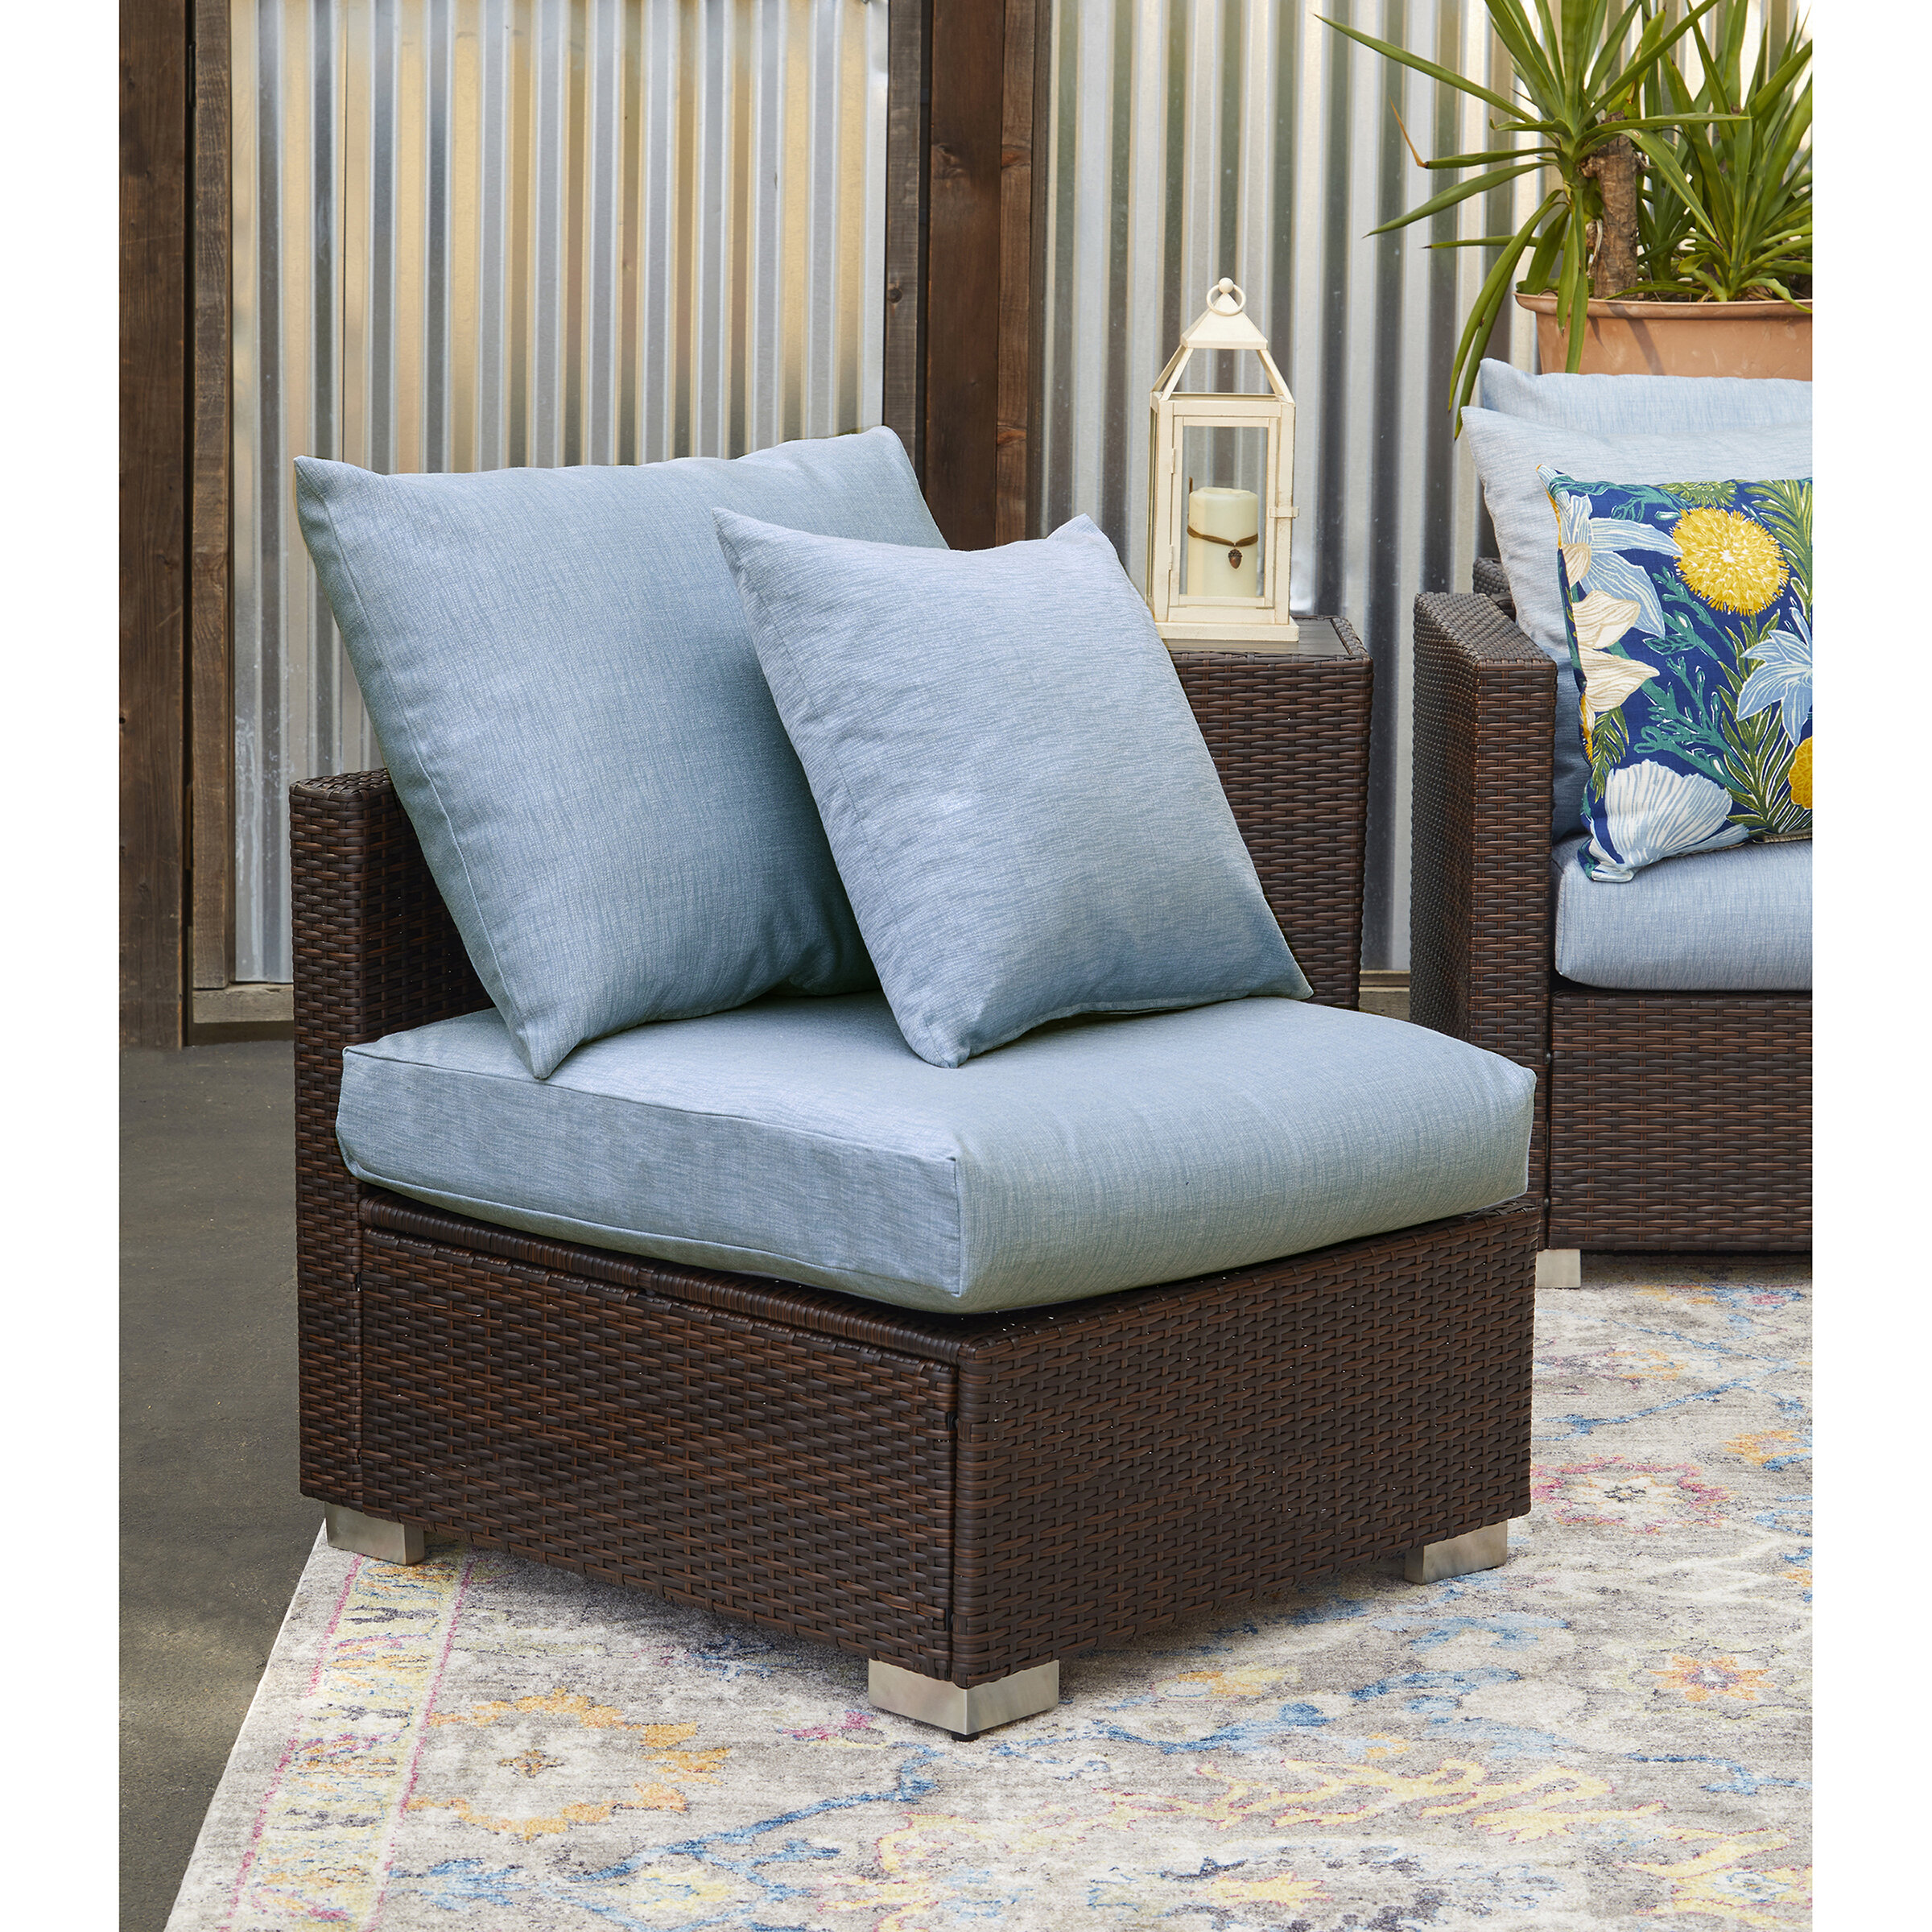 Ivy Bronx Mcmanis Outdoor Rattan Patio Chair with Sunbelievable ...